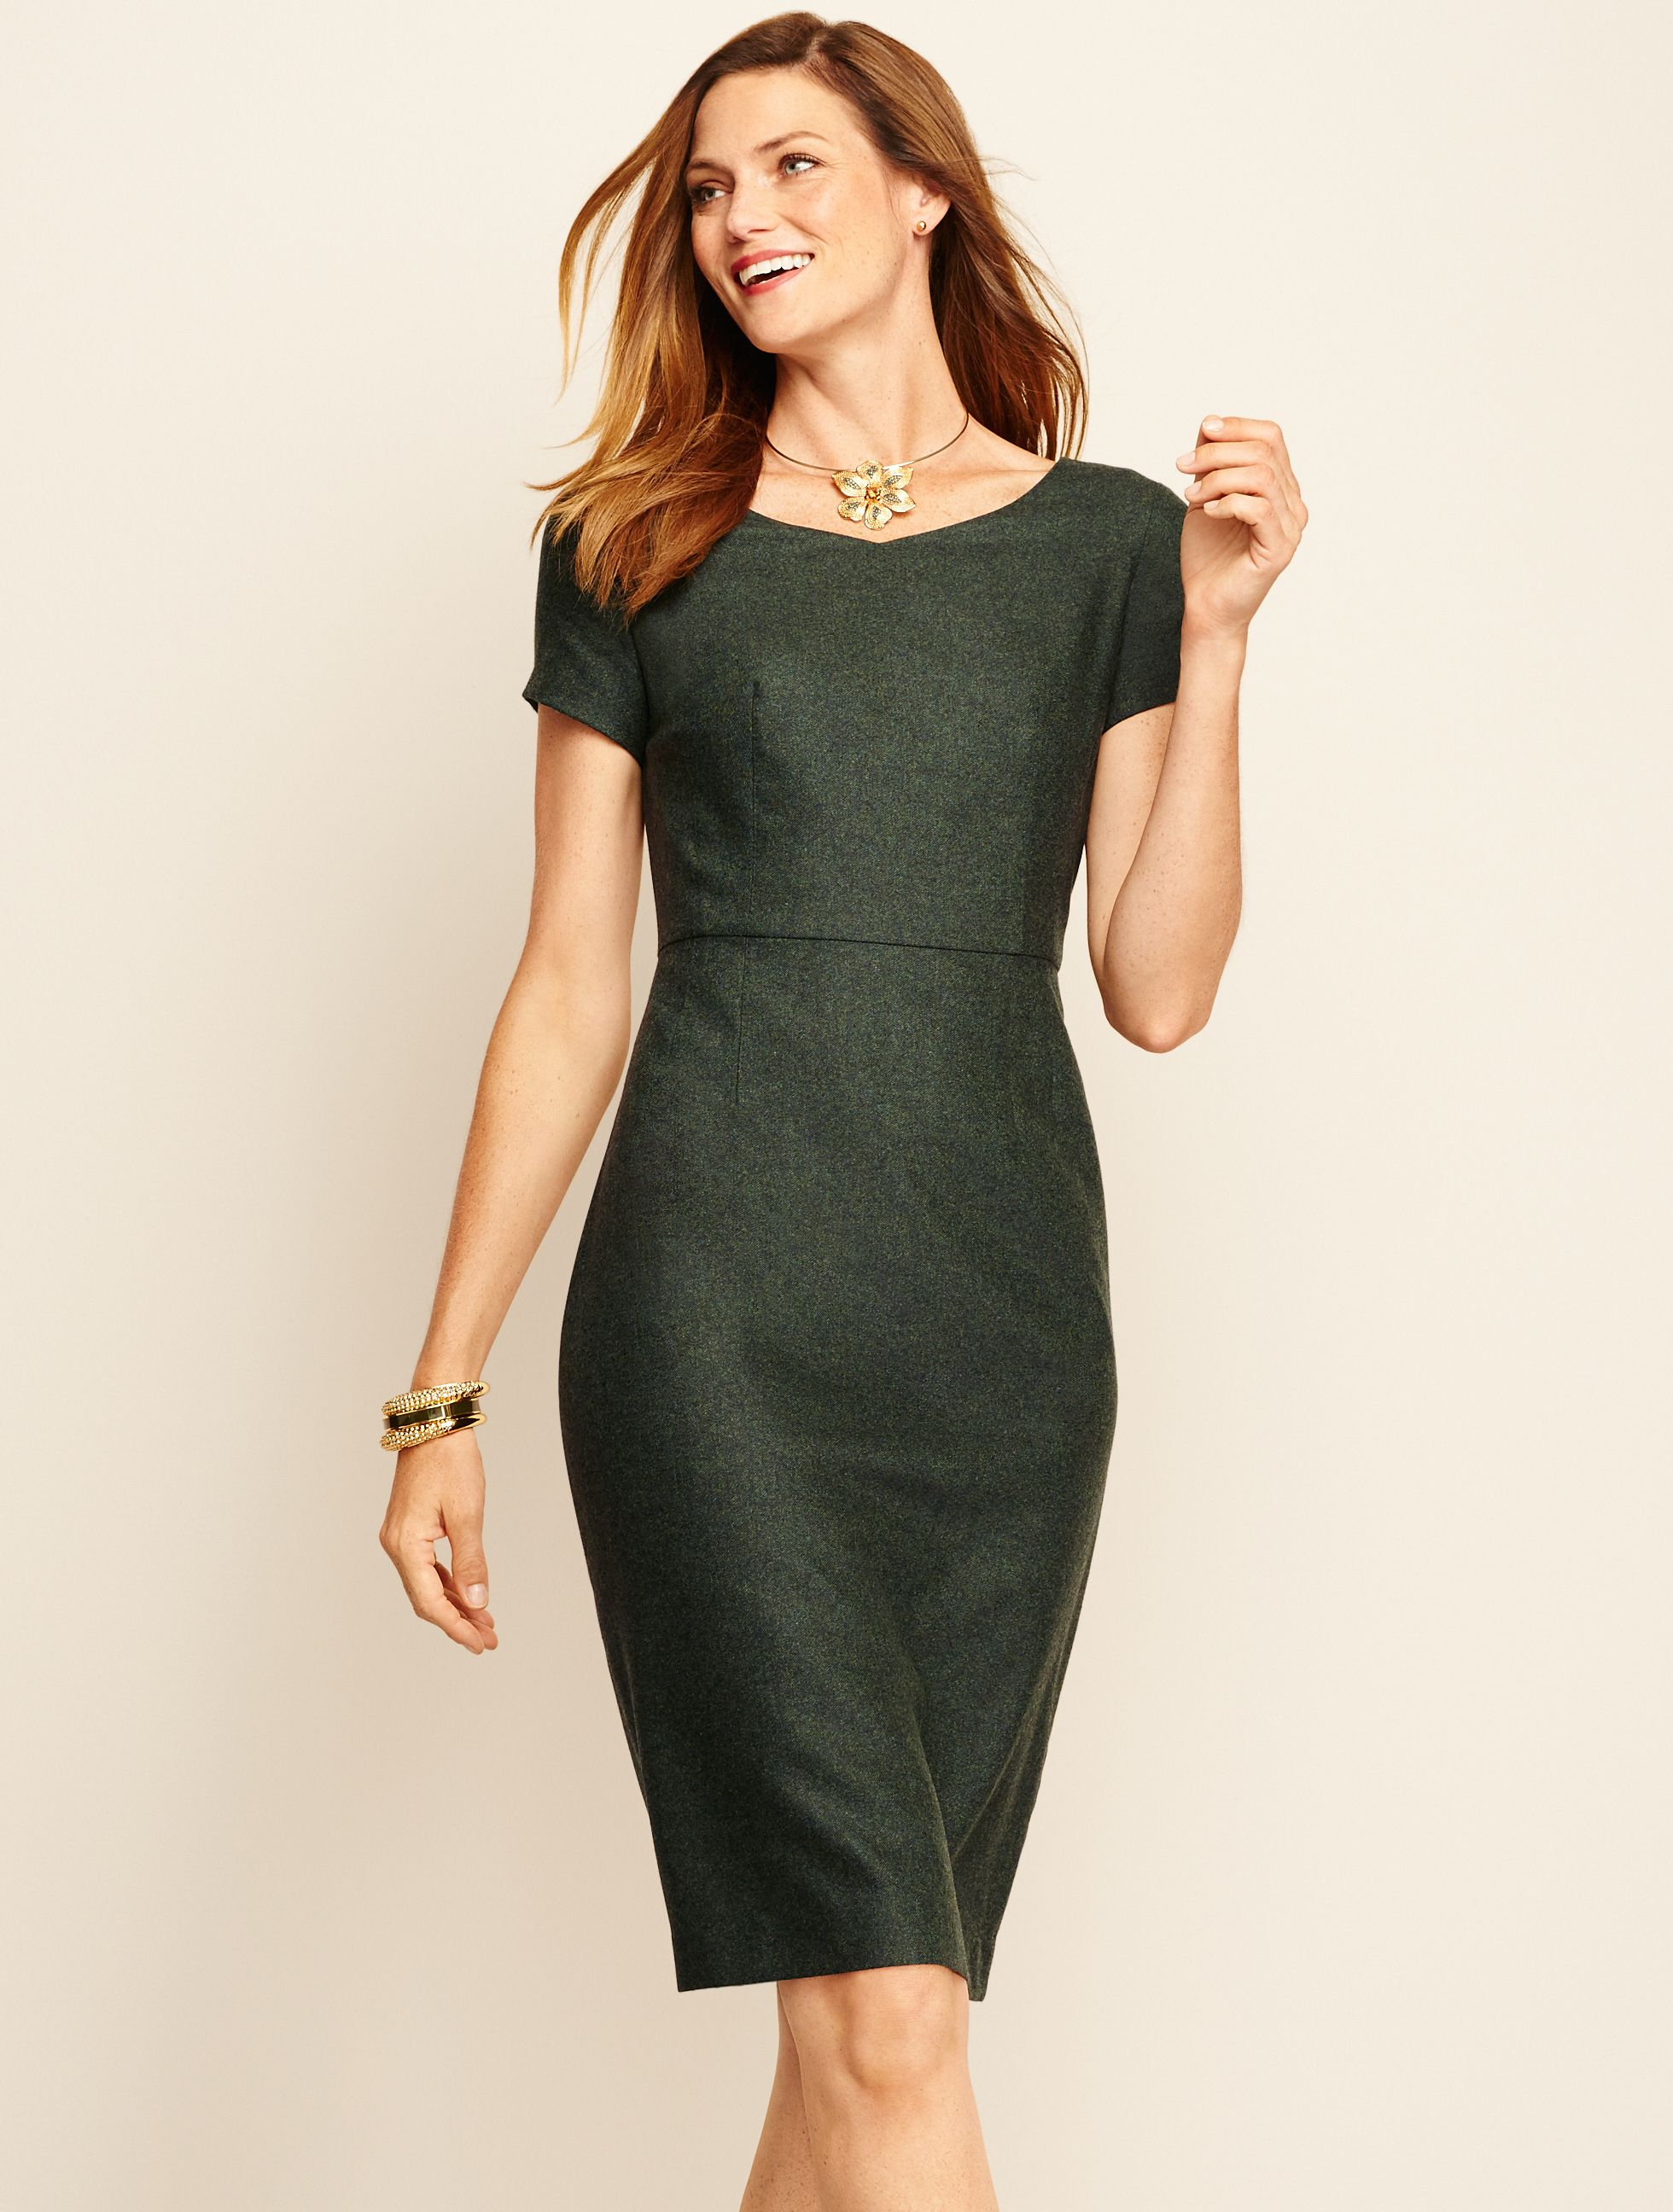 44fbe3cd ... Wool Cashmere Flannel Cap-Sleeve Dress is the suiting dress that  instantly boosts confidence - perfect for conferences and big  presentations. | Talbots